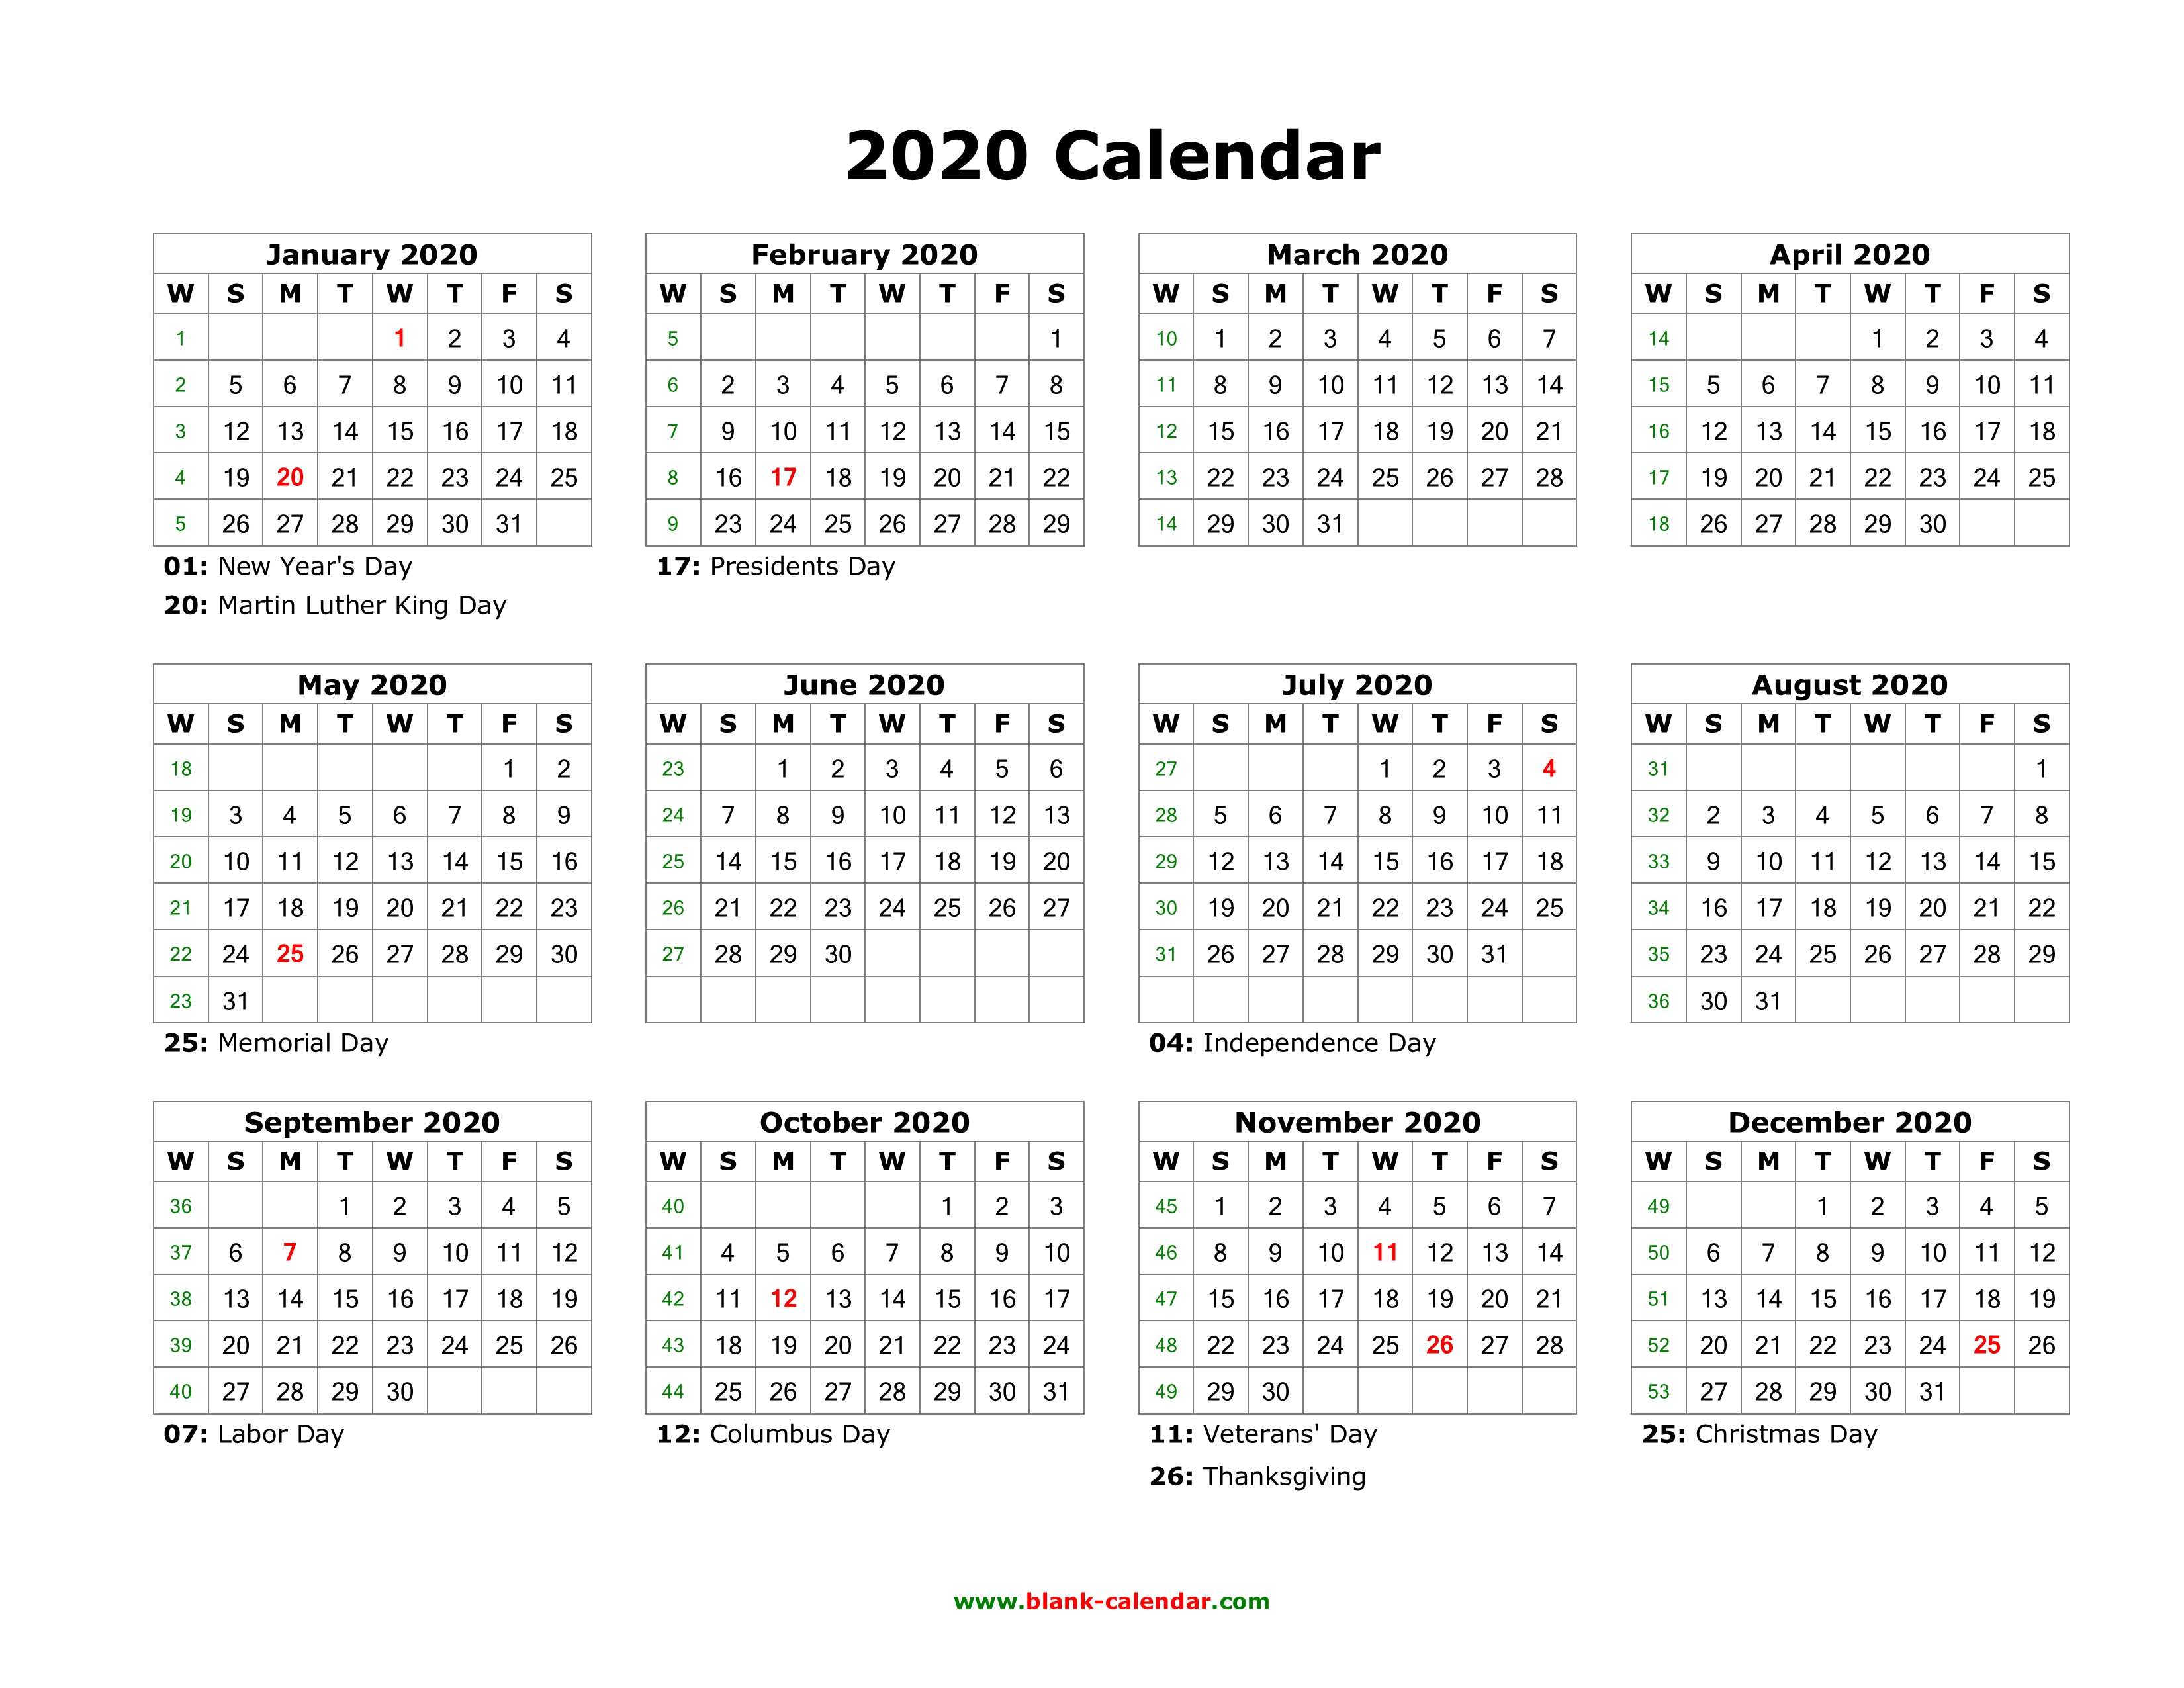 Blank Calendar For 2020 - Tunu.redmini.co